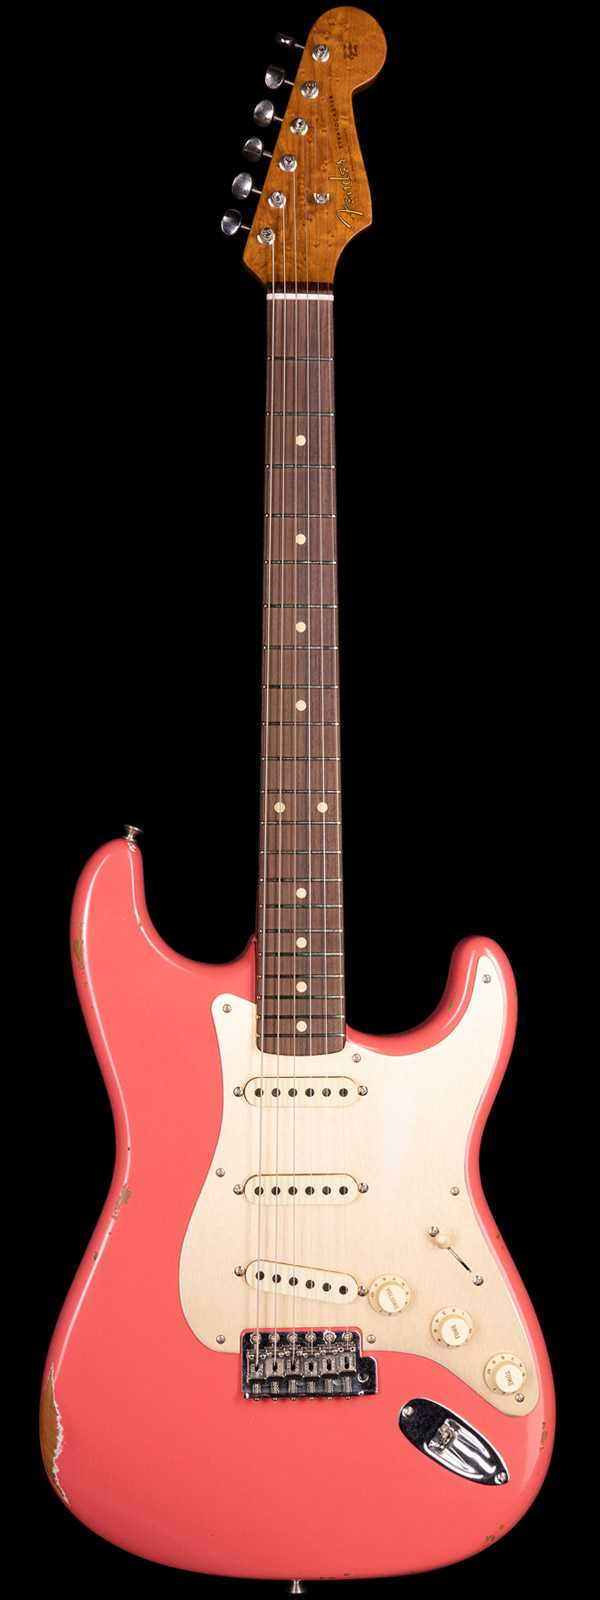 Fender Custom Shop 1960 Stratocaster Relic Roasted Body and Neck Aged Fiesta Red